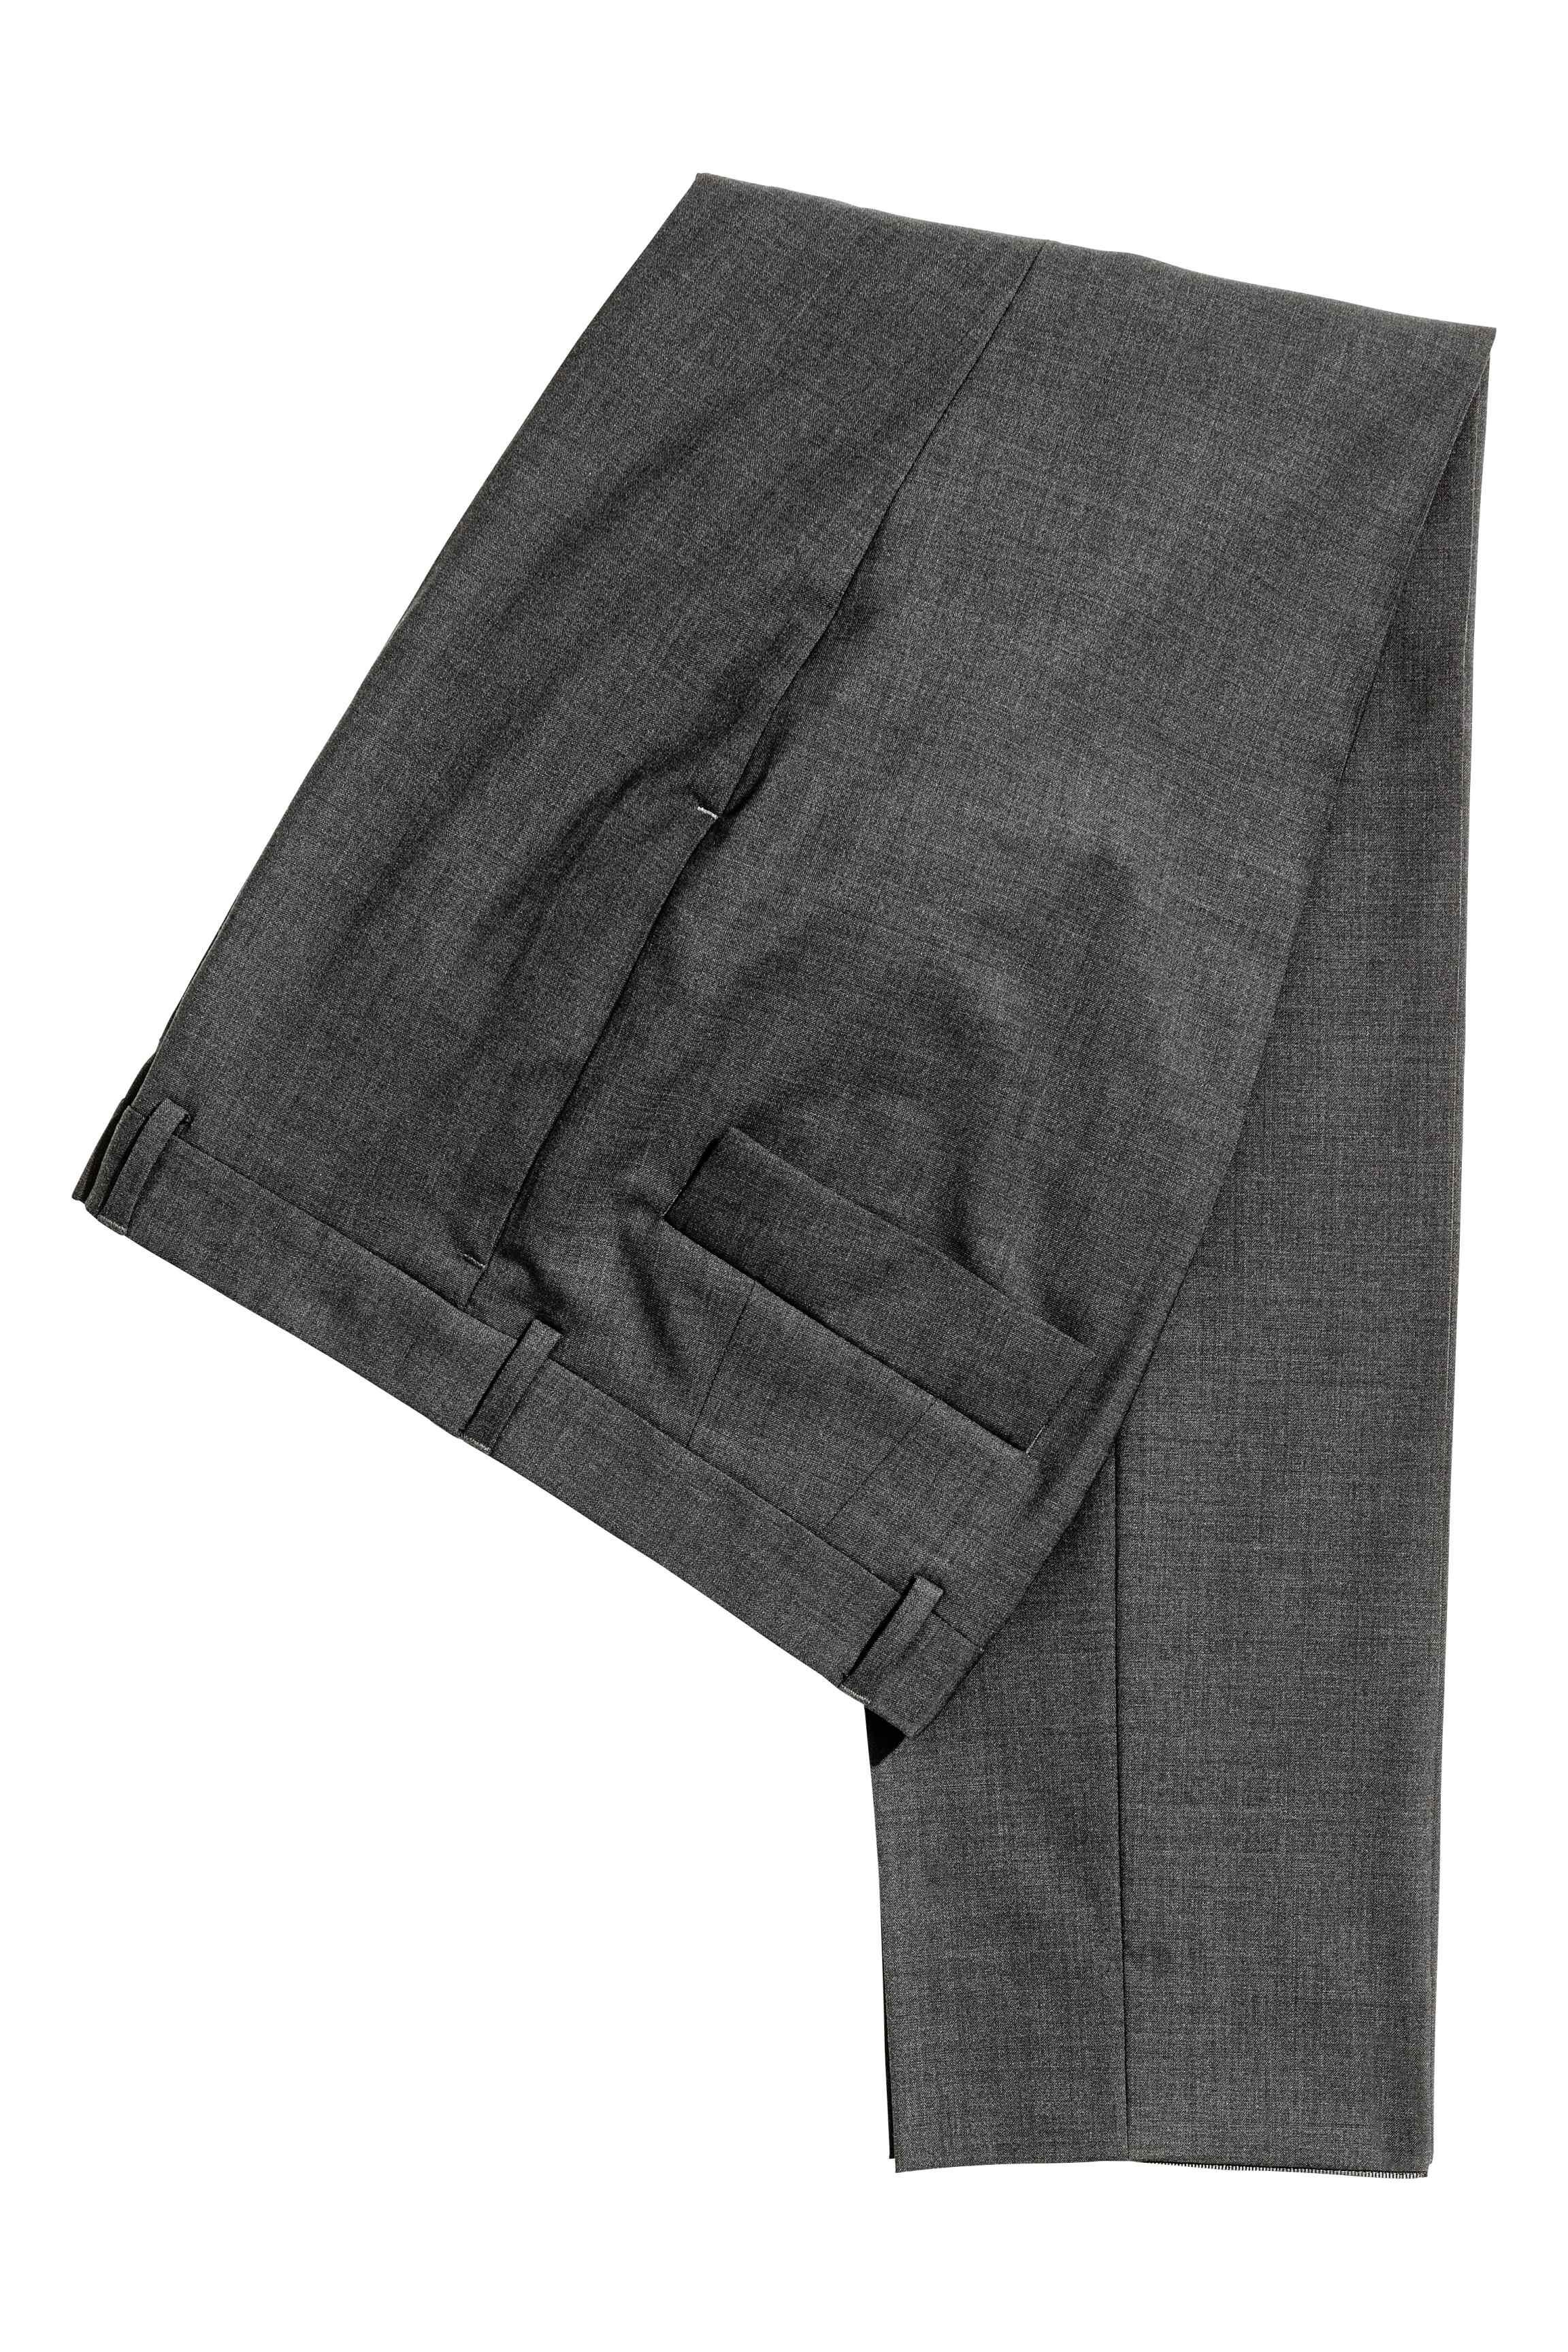 H&M Wool Suit Trousers Slim Fit in Dark Grey (Grey) for Men